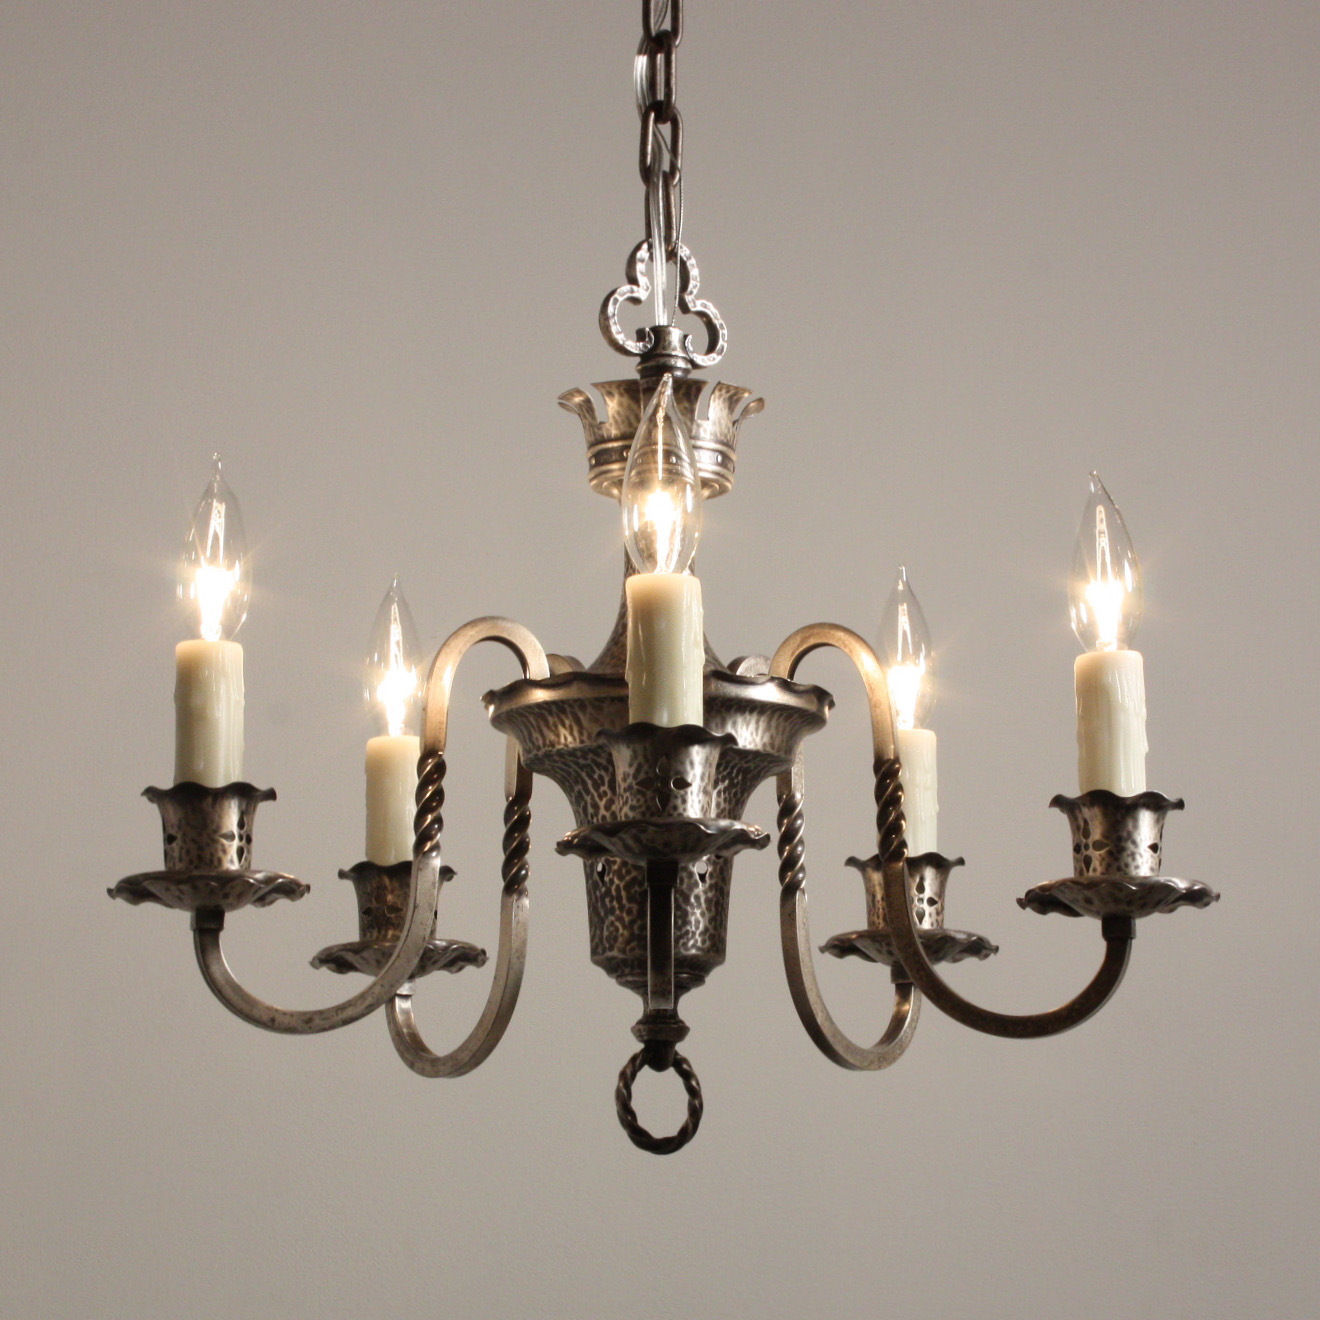 Delightful Antique Spanish Revival Five Light Chandelier, Silver Plate,  c.1920 For Sale | Antiques.com | Classifieds - Delightful Antique Spanish Revival Five Light Chandelier, Silver